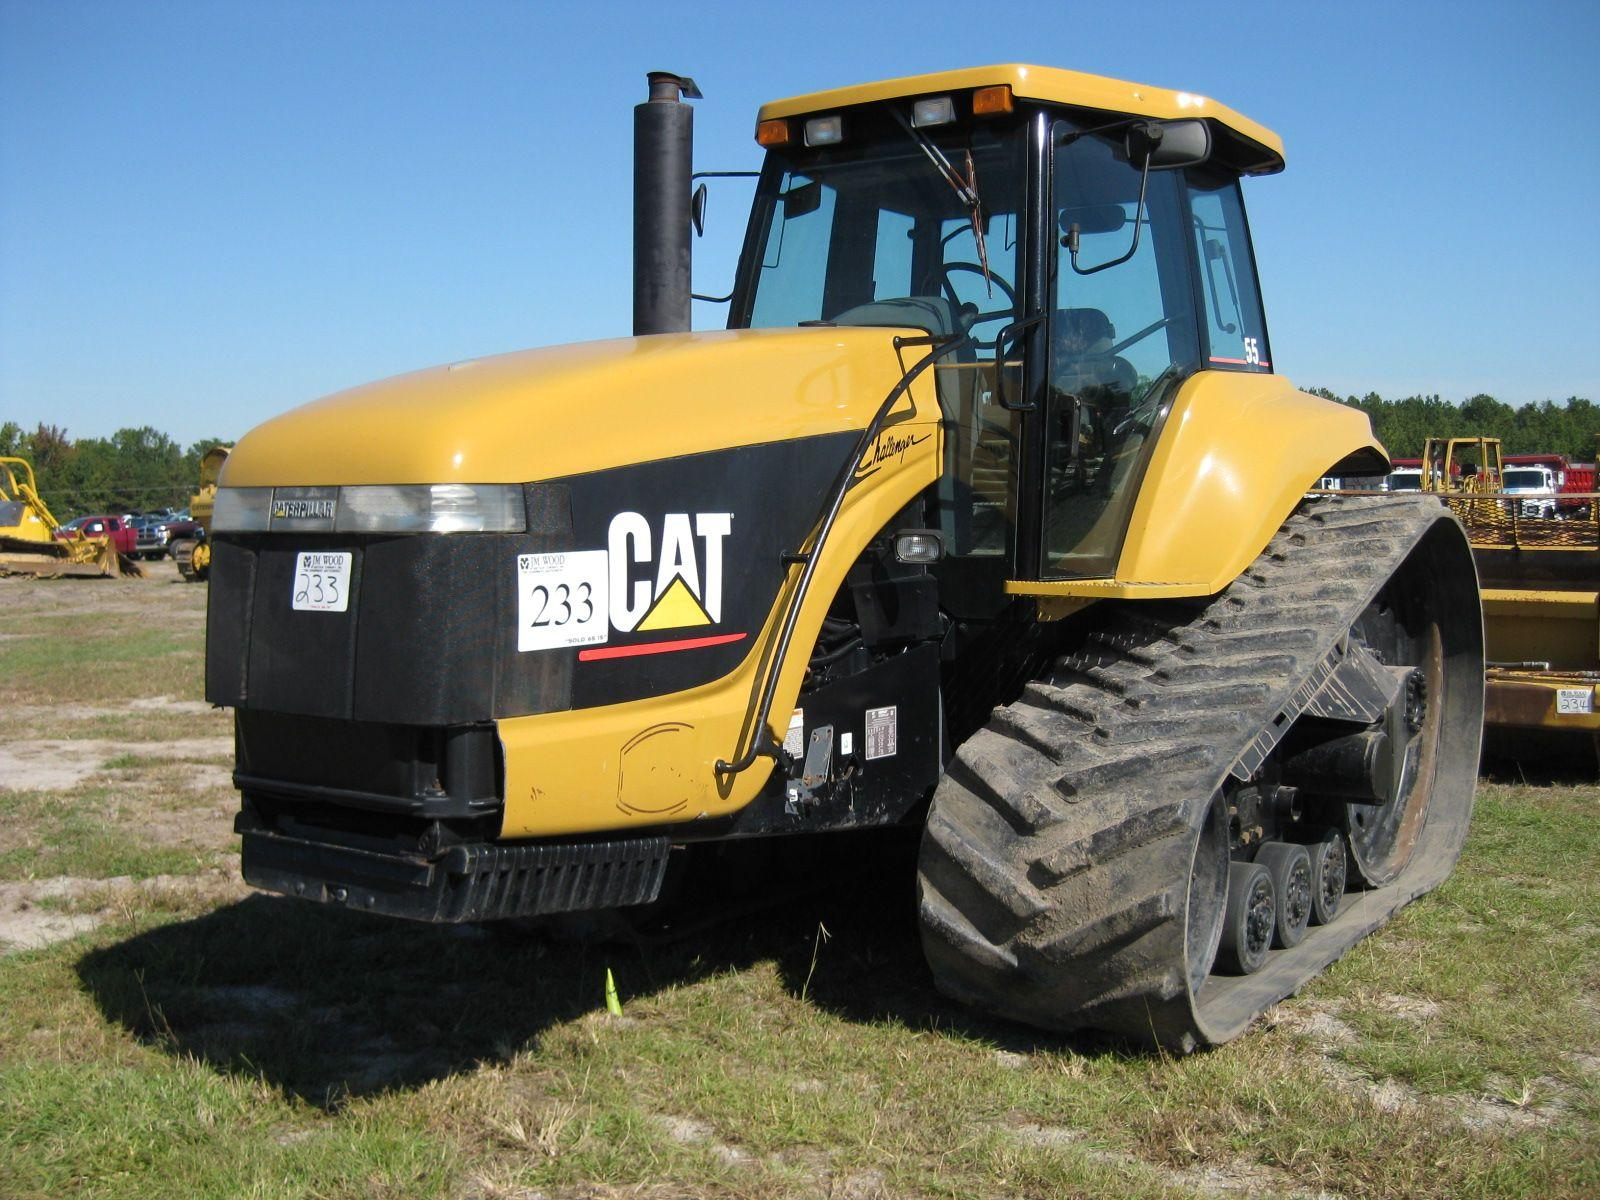 Cat Challenger Tractors : Cat challenger ag tractor j m wood auction company inc